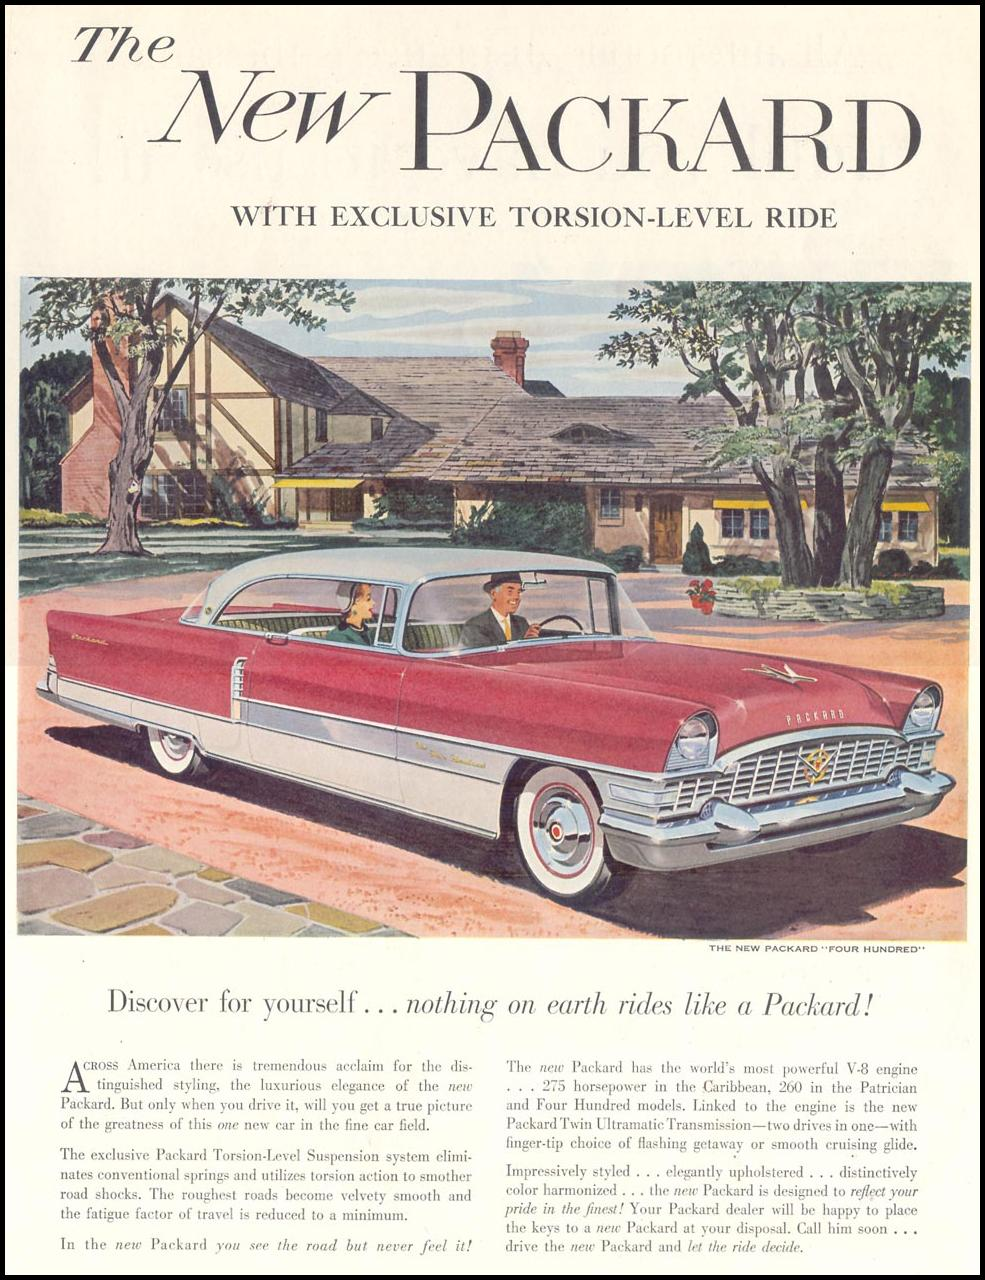 PACKARD AUTOMOBILES SATURDAY EVENING POST 04/09/1955